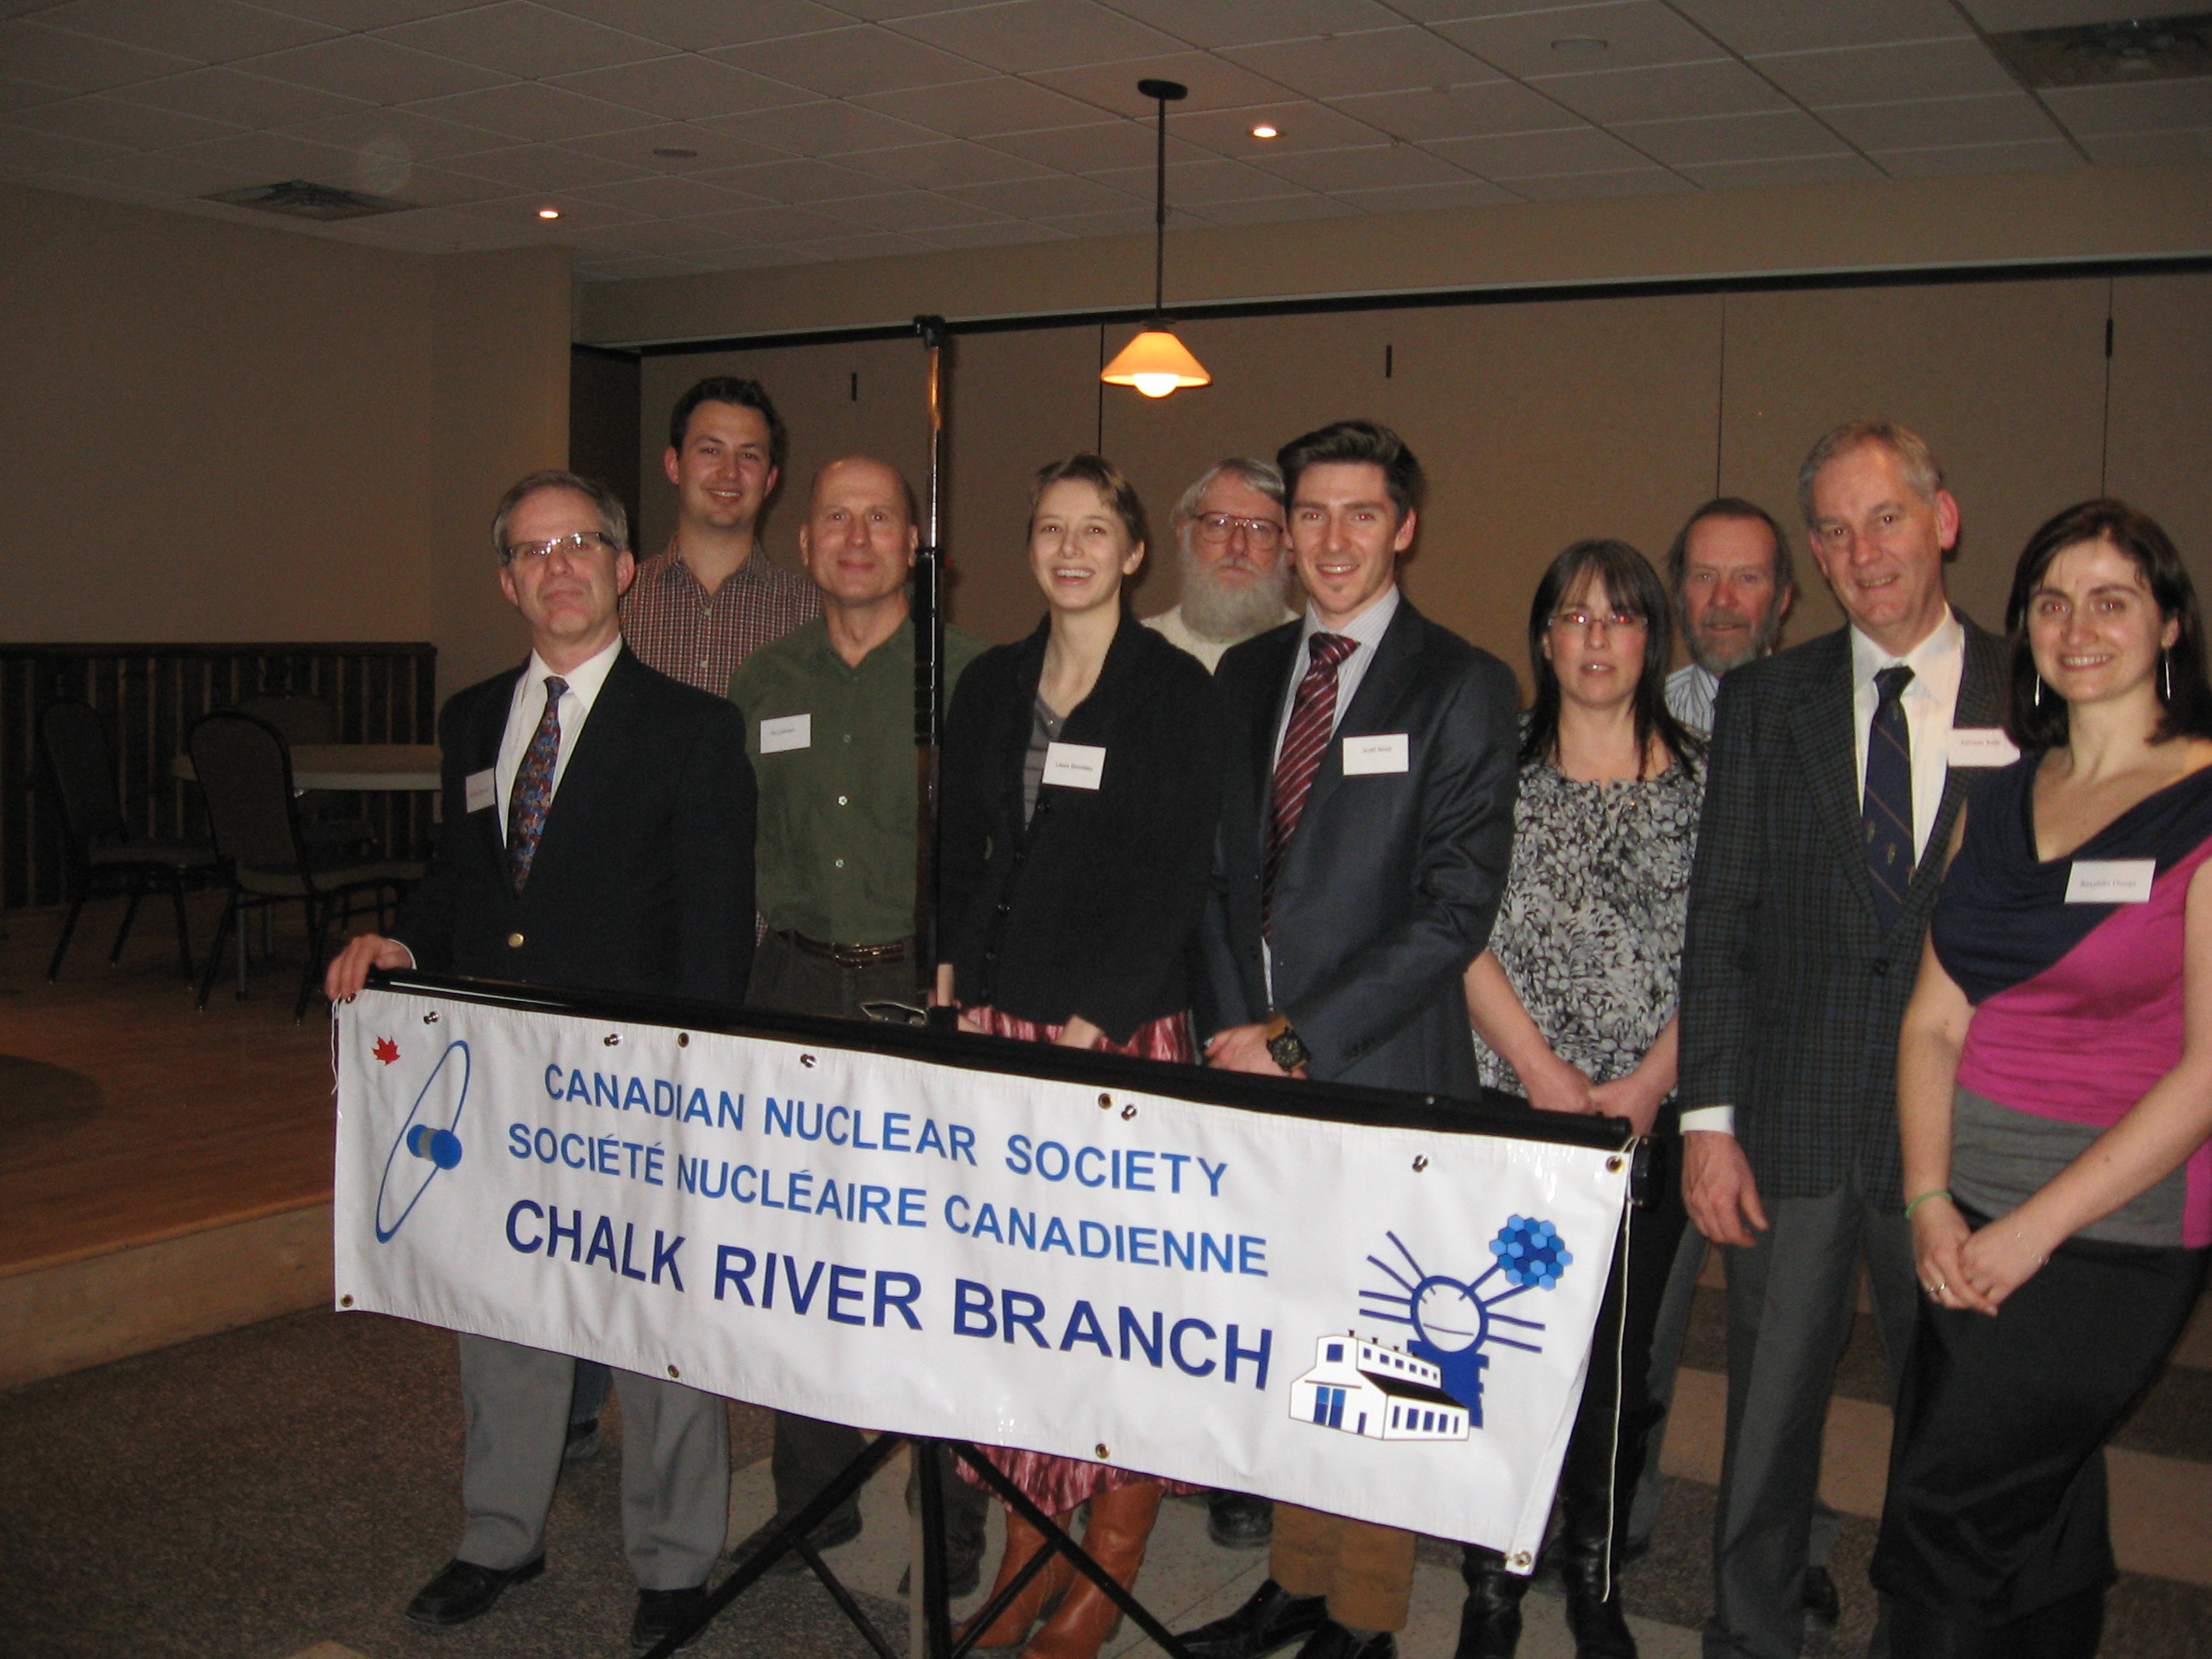 Group Photo of CNS President with the Chalk River Branch Executive